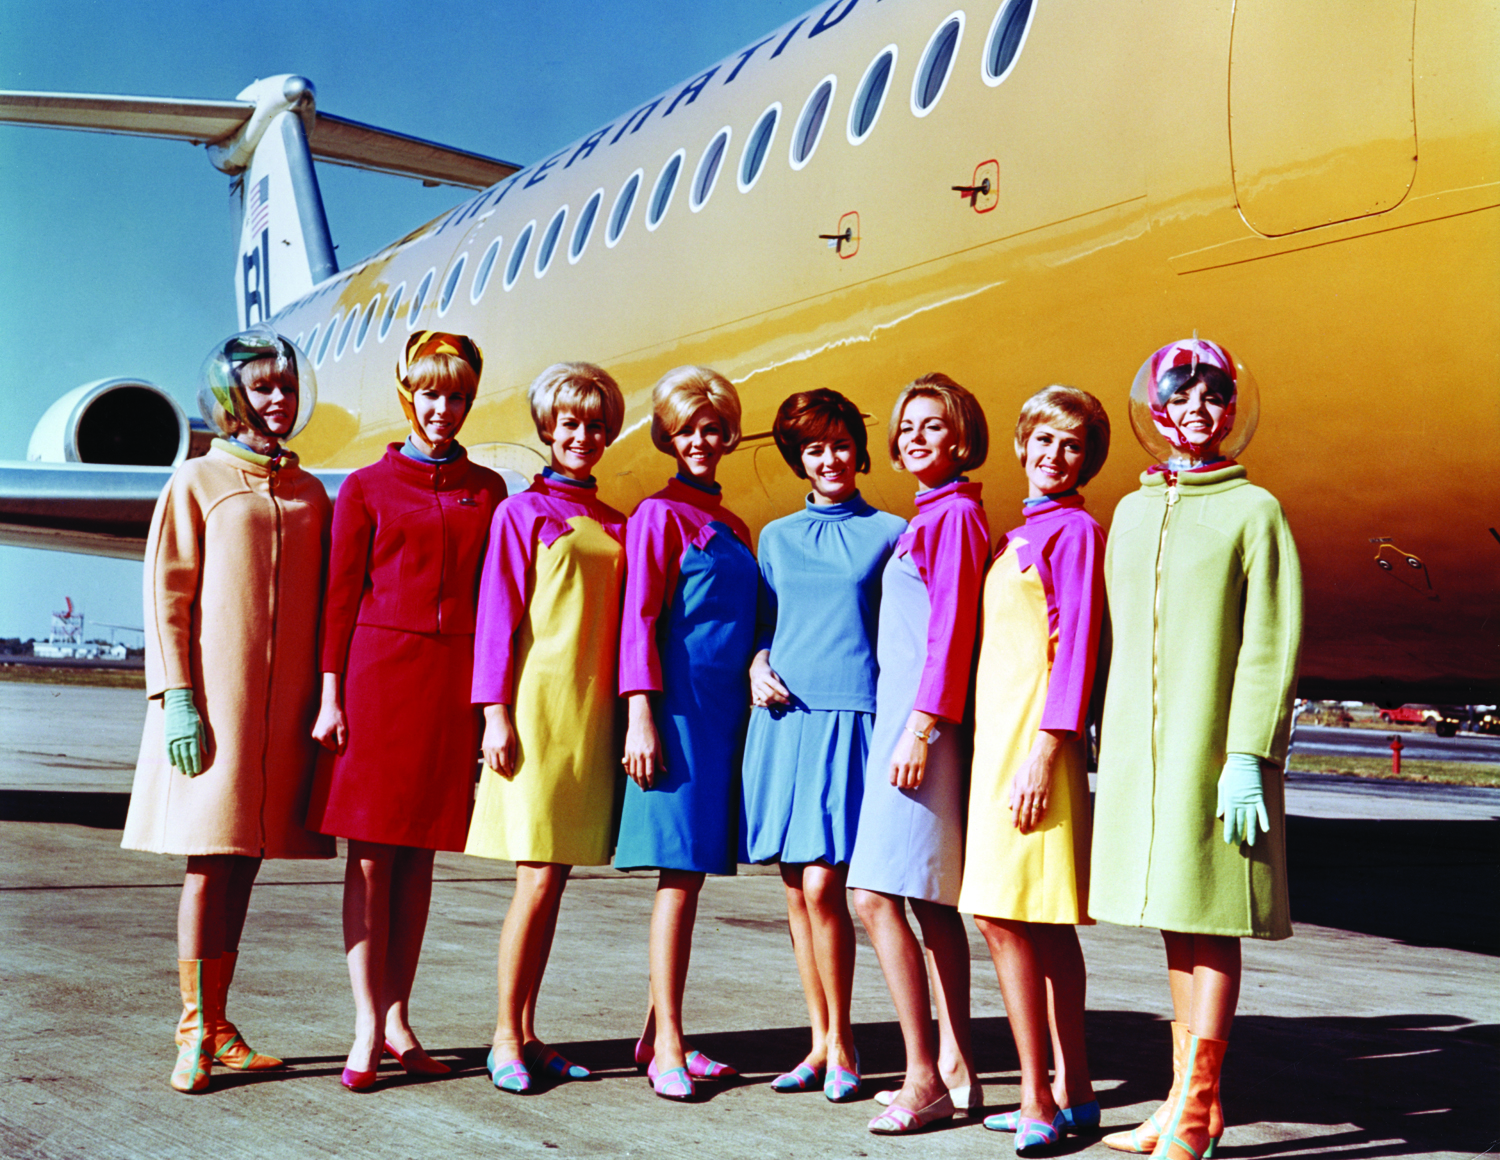 Braniff International Airways hostesses in uniforms by Emilio Pucci 1965 Photo credit: Braniff International Public Relations Archives, History of Aviation Collection, UTDallas